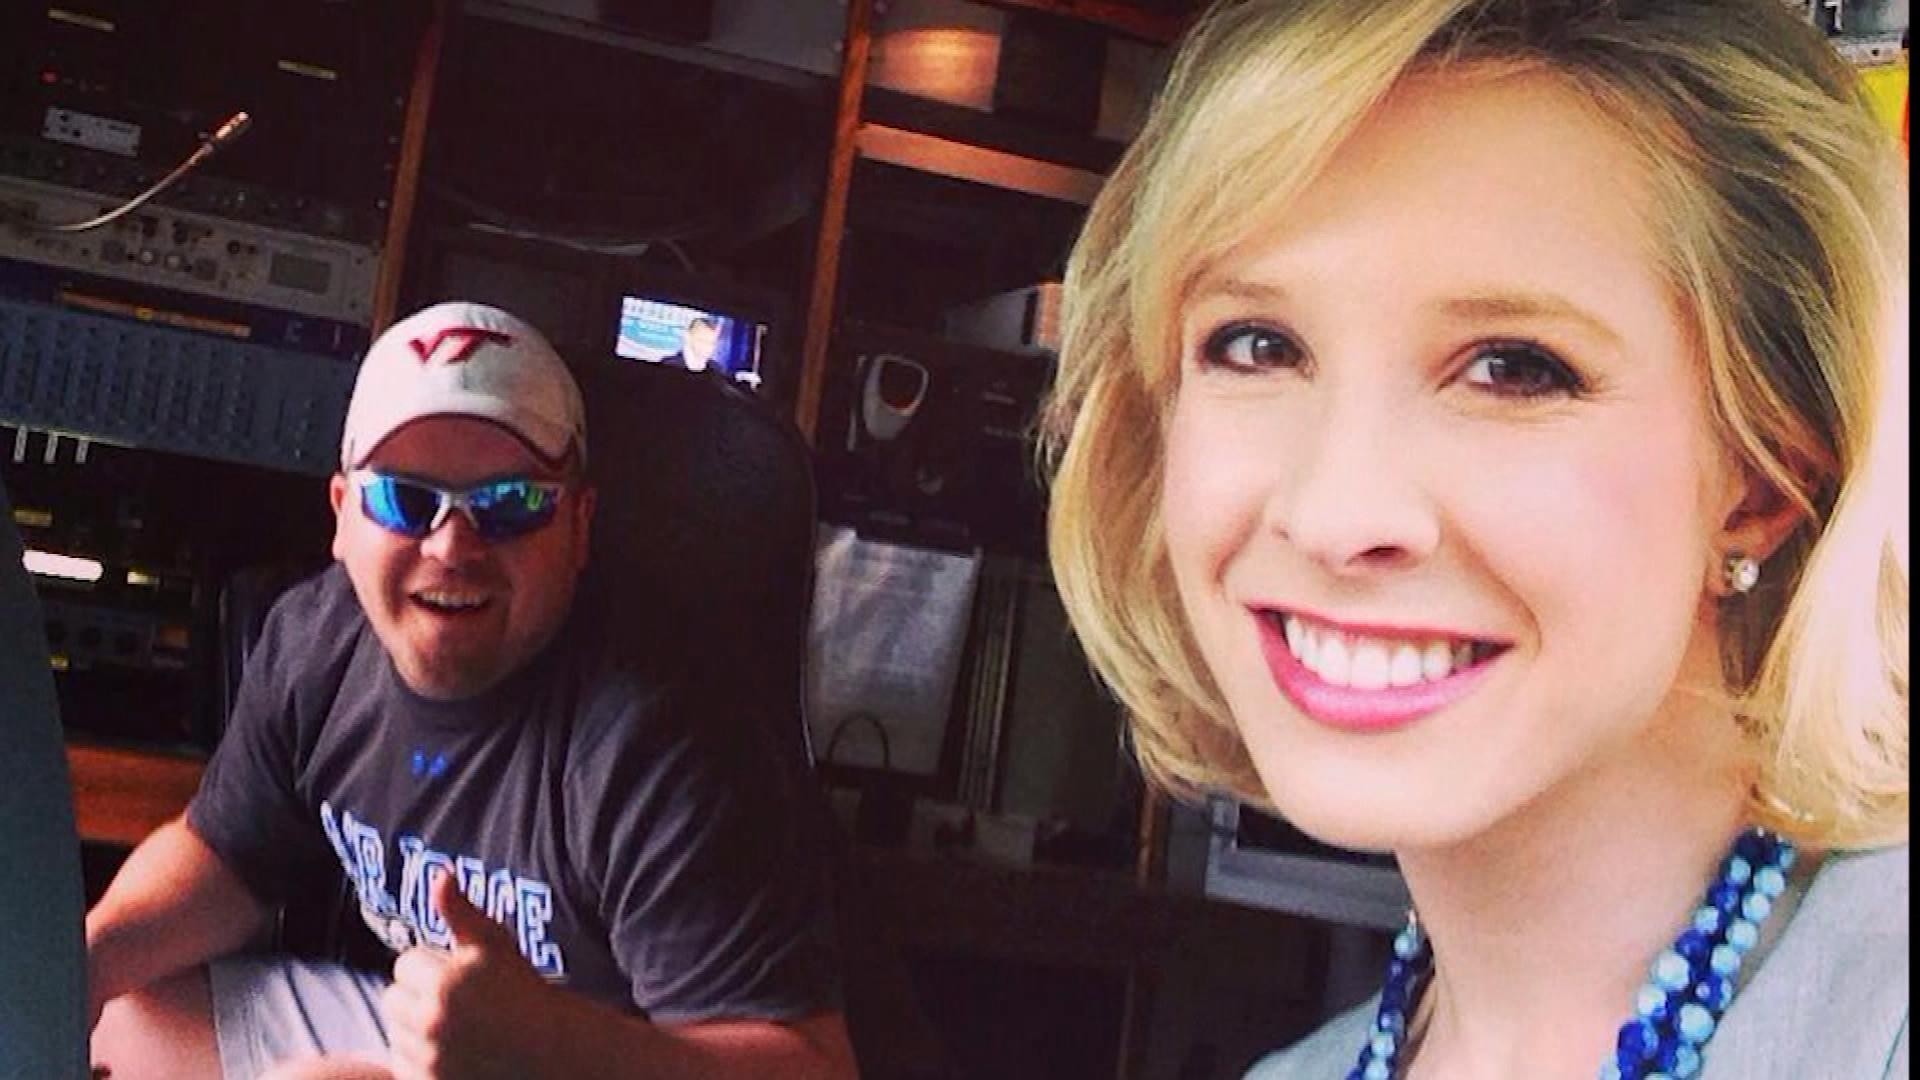 Adam Ward and Alison Parker (credit: CBS)